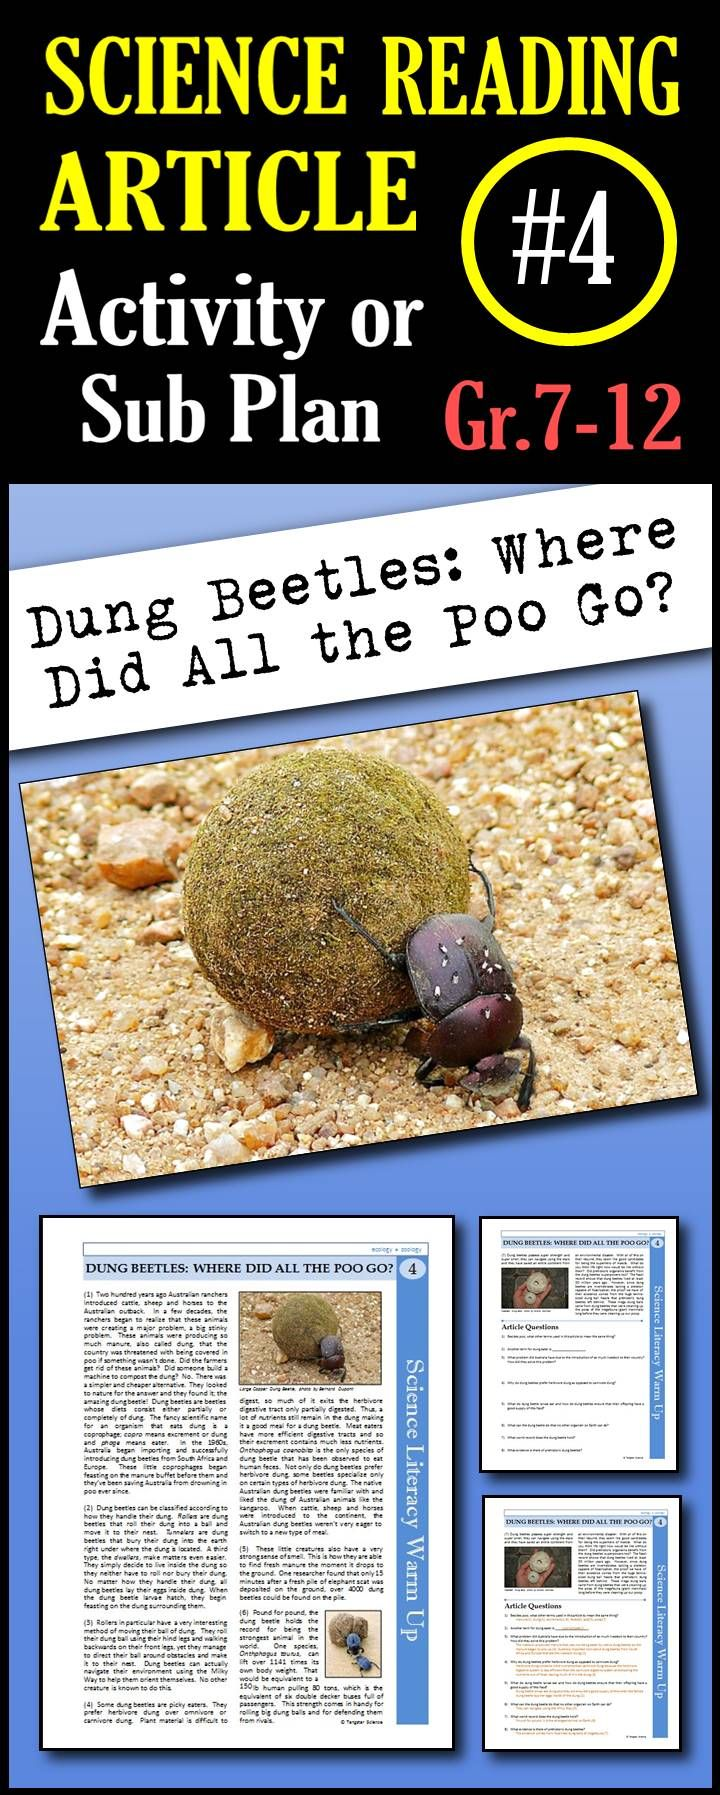 In this article, students will read about the interesting habits, diet and behaviors of the dung beetle. They will also learn about why dung beetles are important to ecosystems.  This is a great in class activity, homework assignment, weekly science reading assignment, sub plan or in school suspension plan.  Use this to save time looking for engaging and appropriate articles with questions!